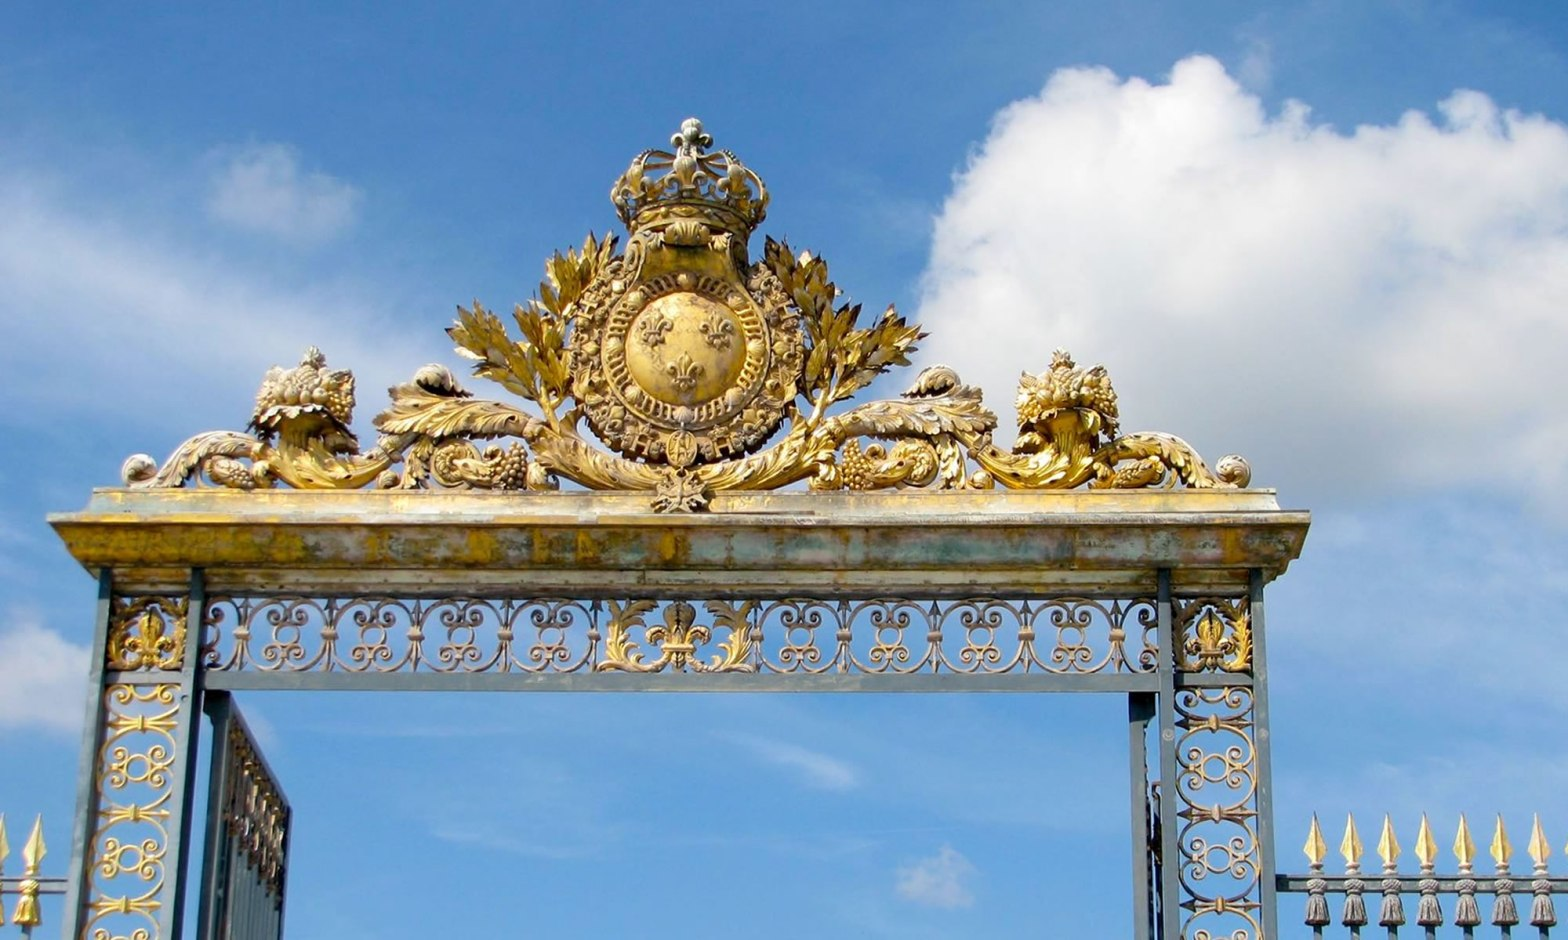 The golden entryway to the Versailles Palace, on a blue sky day.